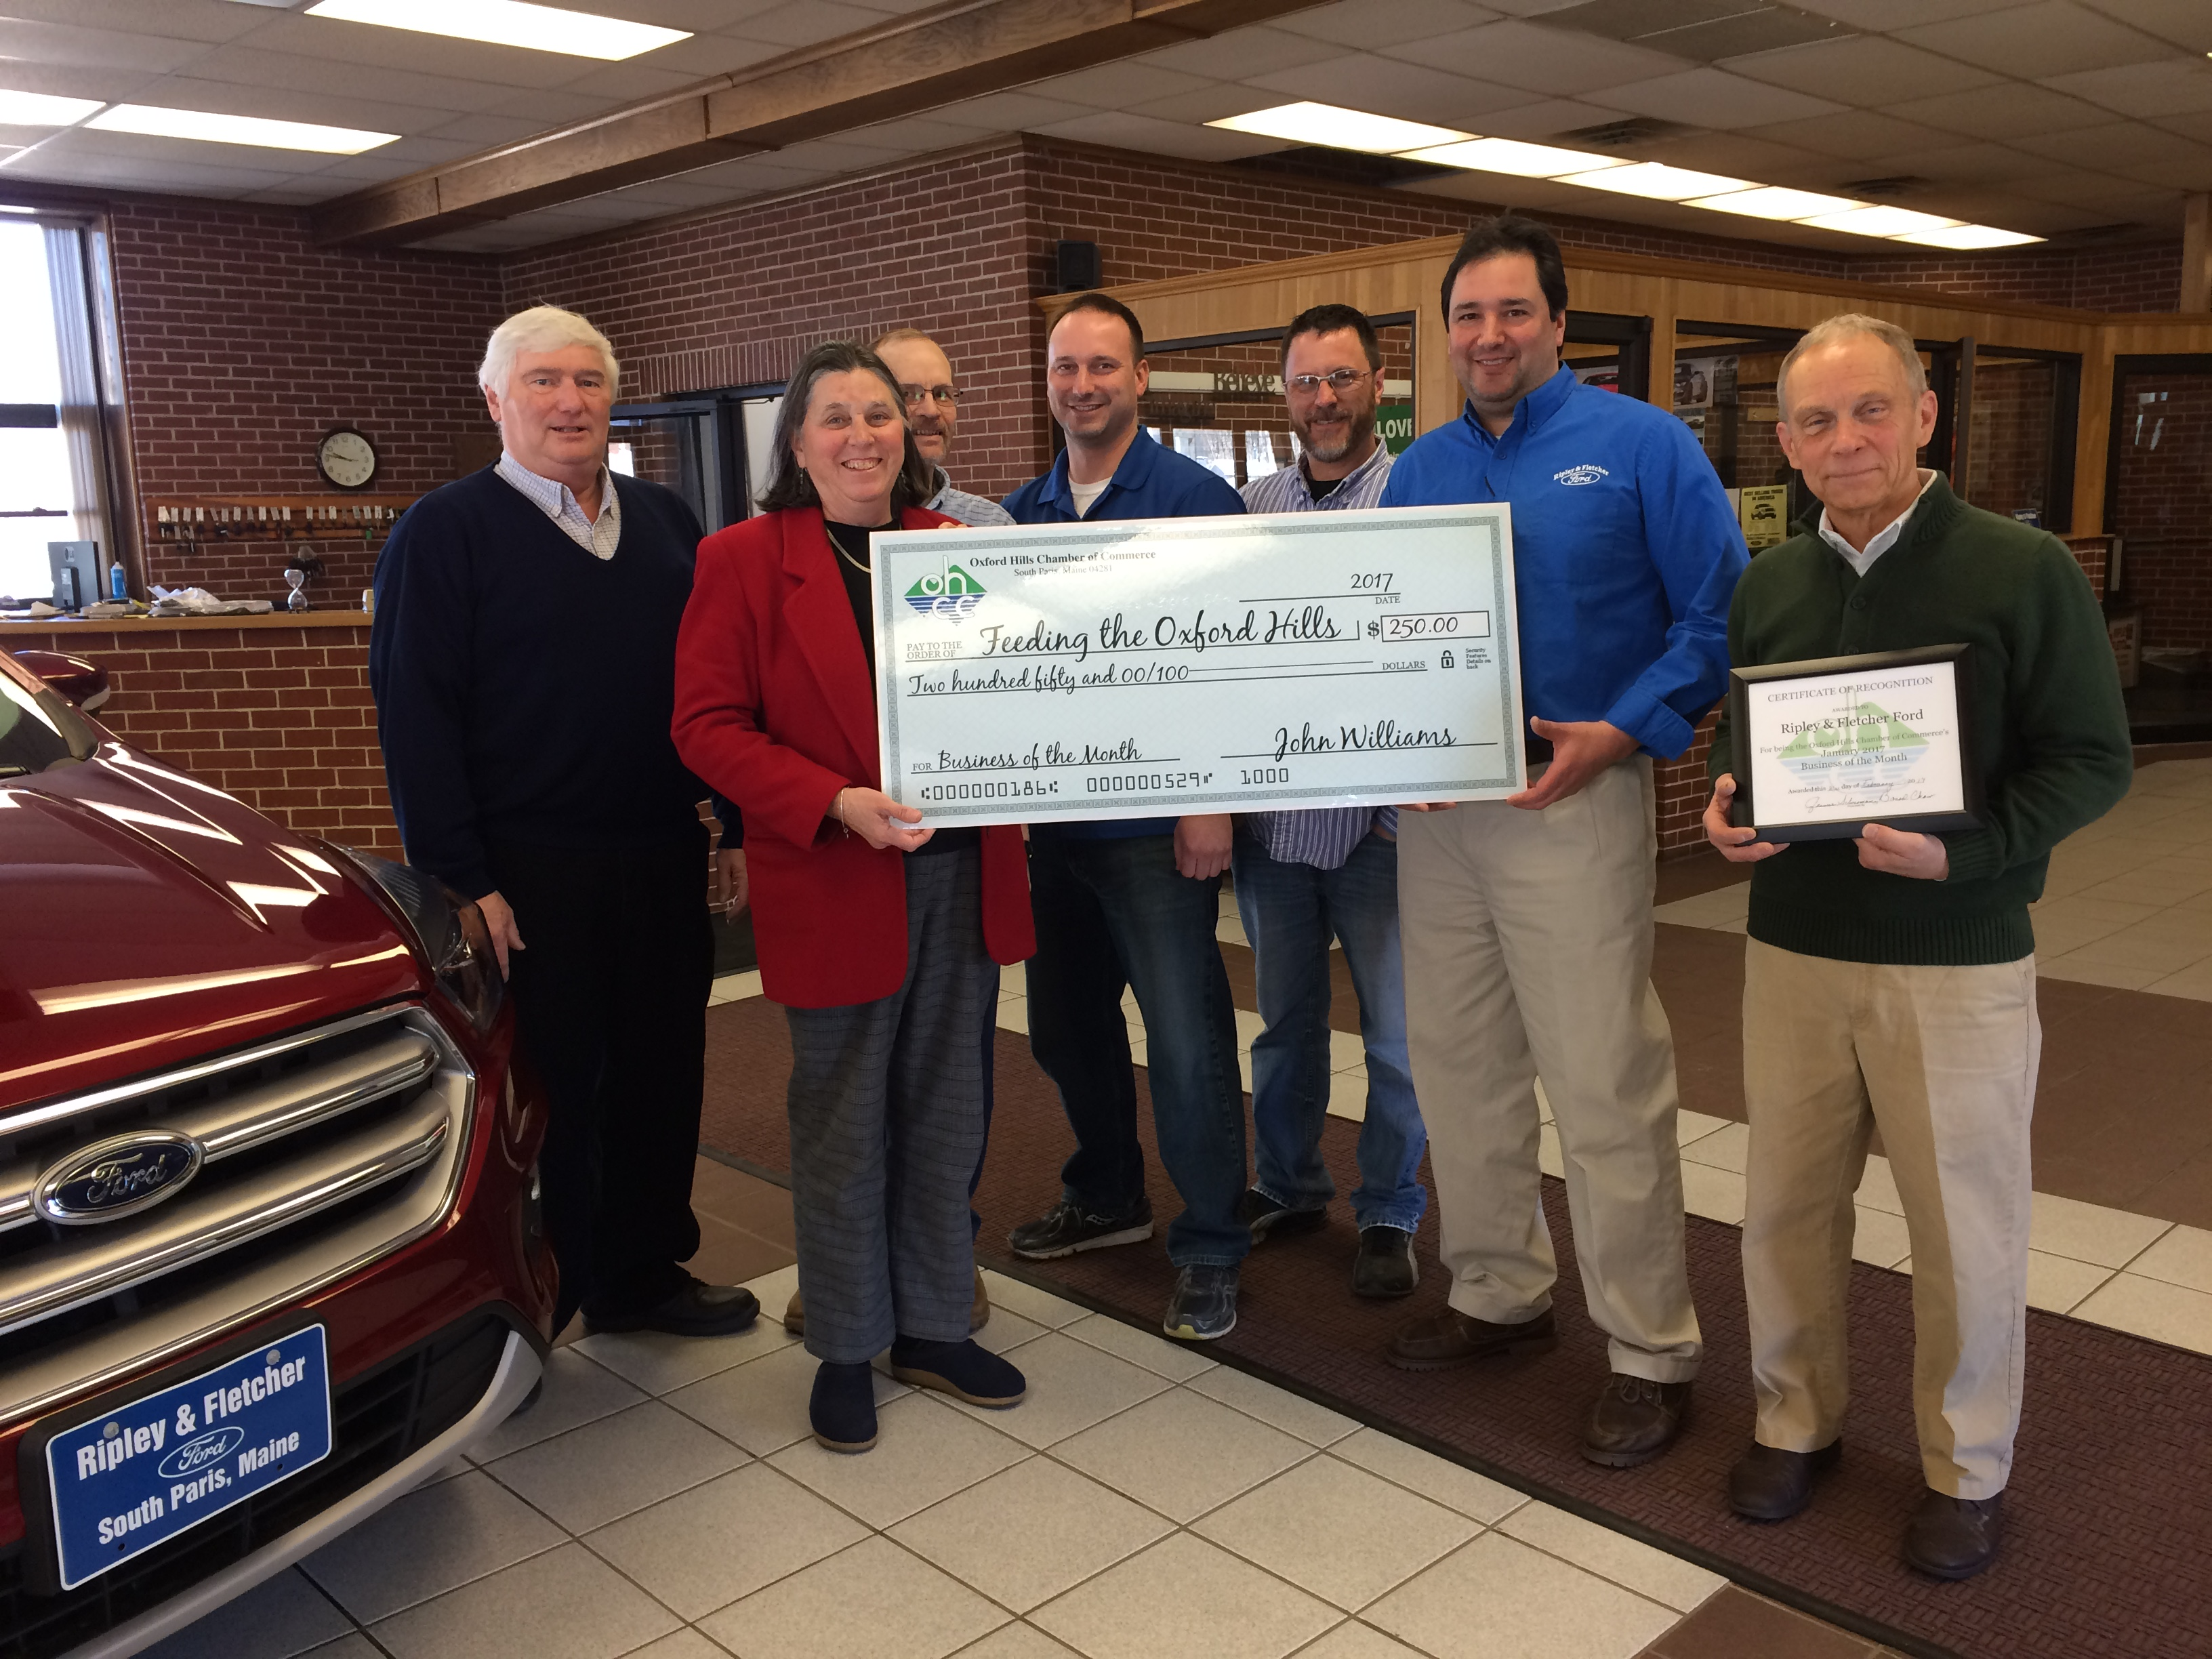 january business of the month winner announced oxford hills chamber of commerce oxford hills chamber of commerce